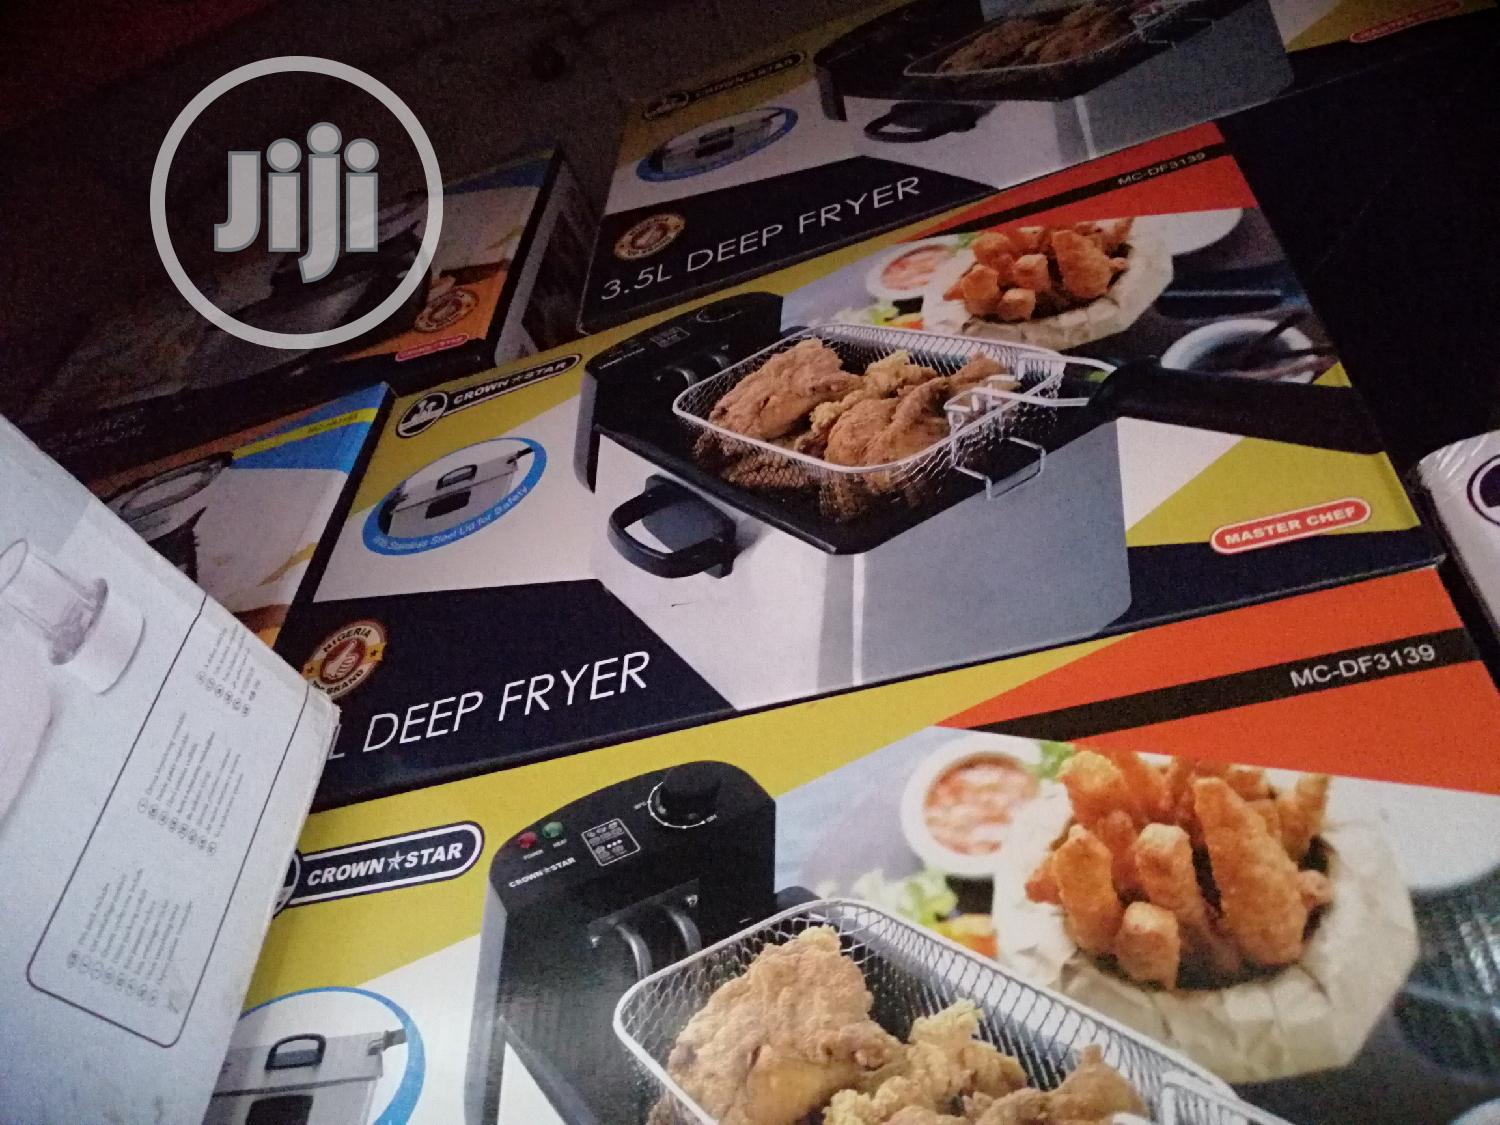 Archive: Master Chef Stainless Deep Fryer 3.5L